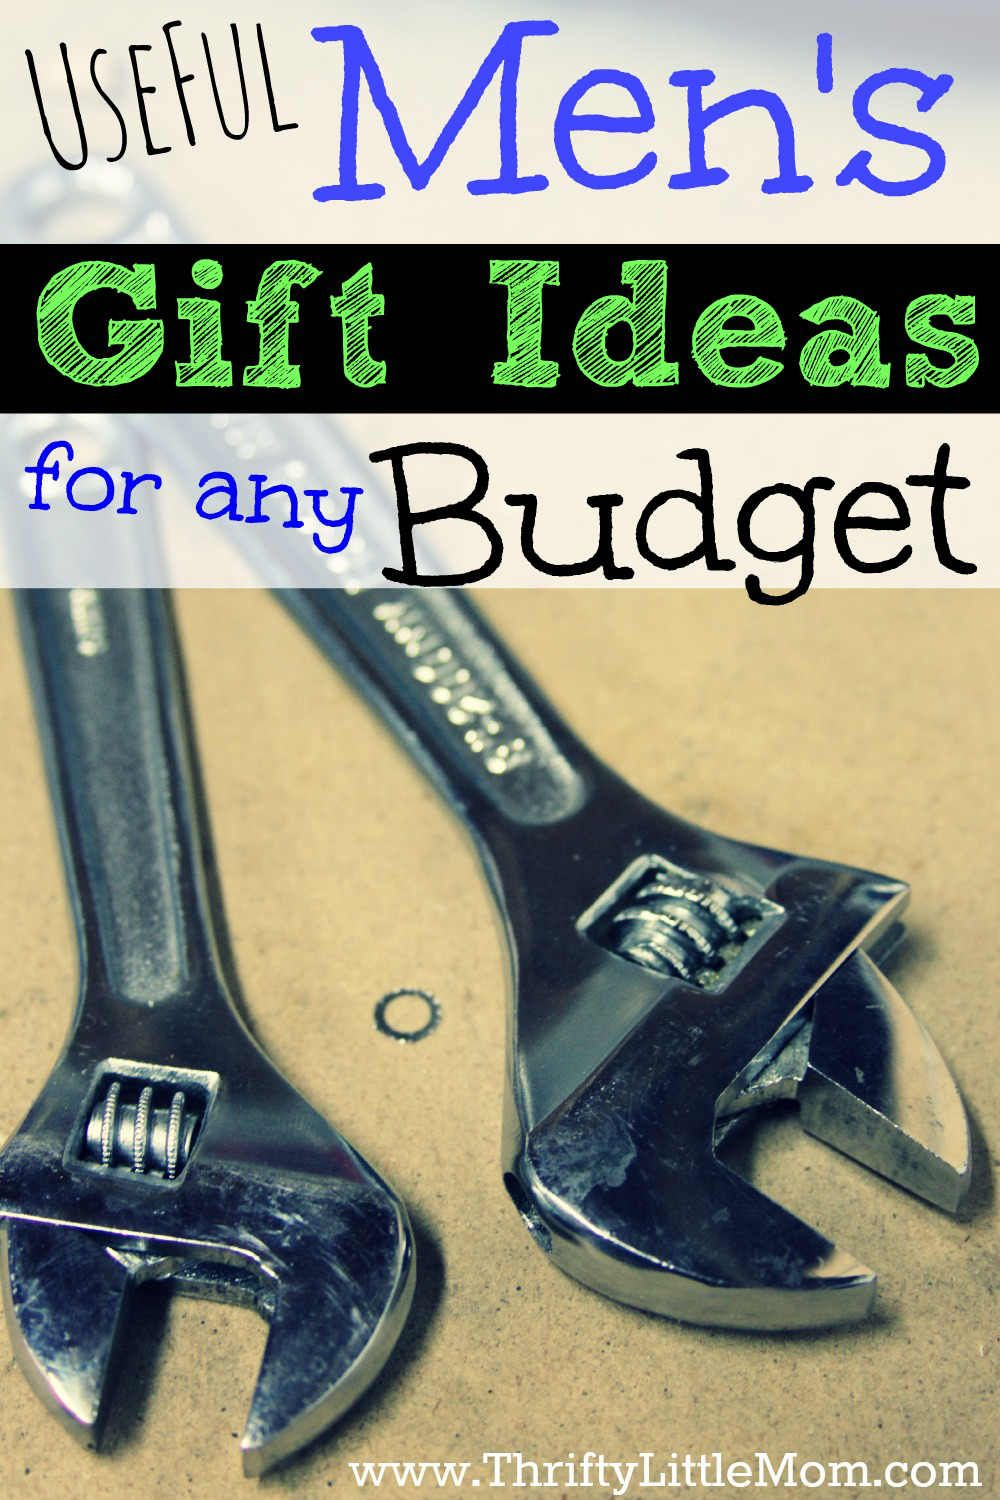 Christmas Gifts For Men The Ultimate Useful List Of Ideas